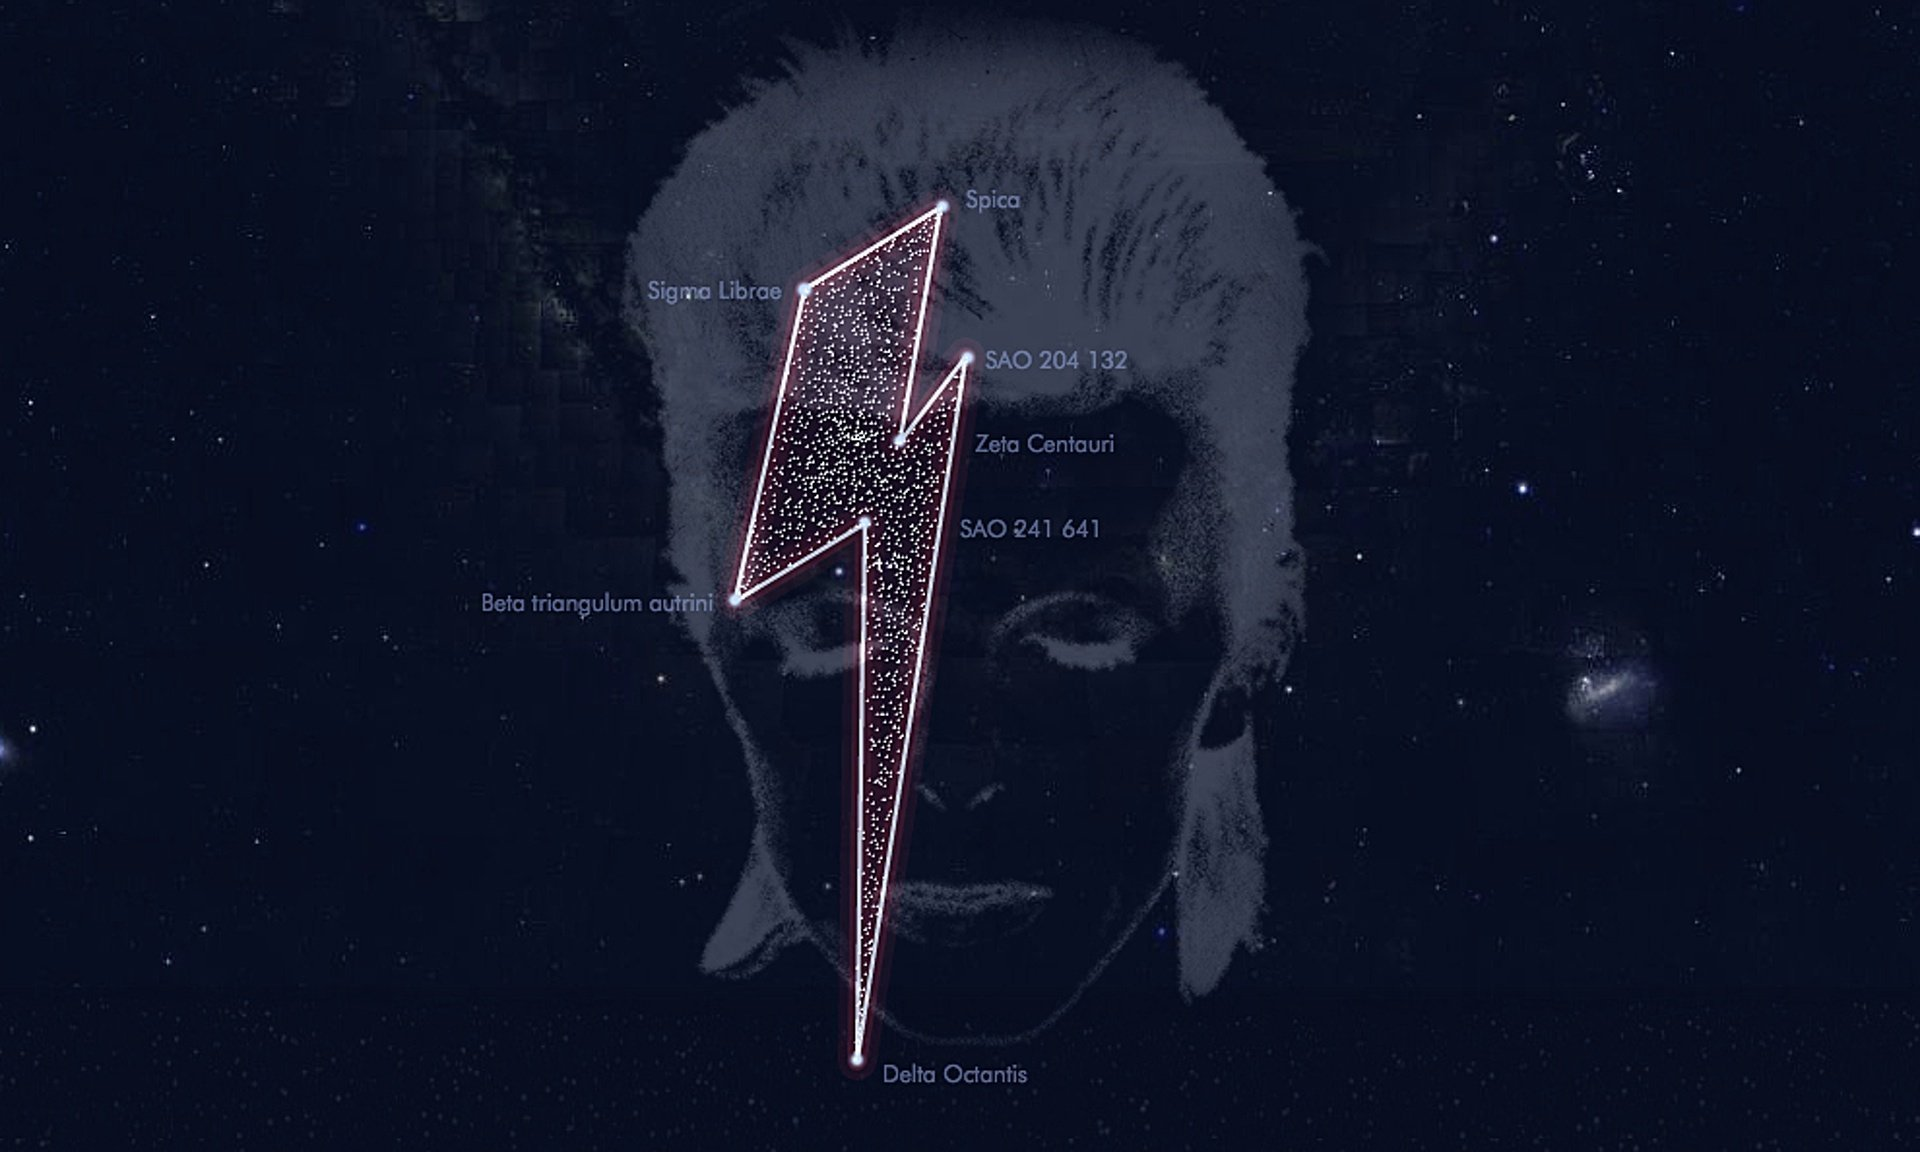 A constellation of stars registered in tribute to the musician David Bowie